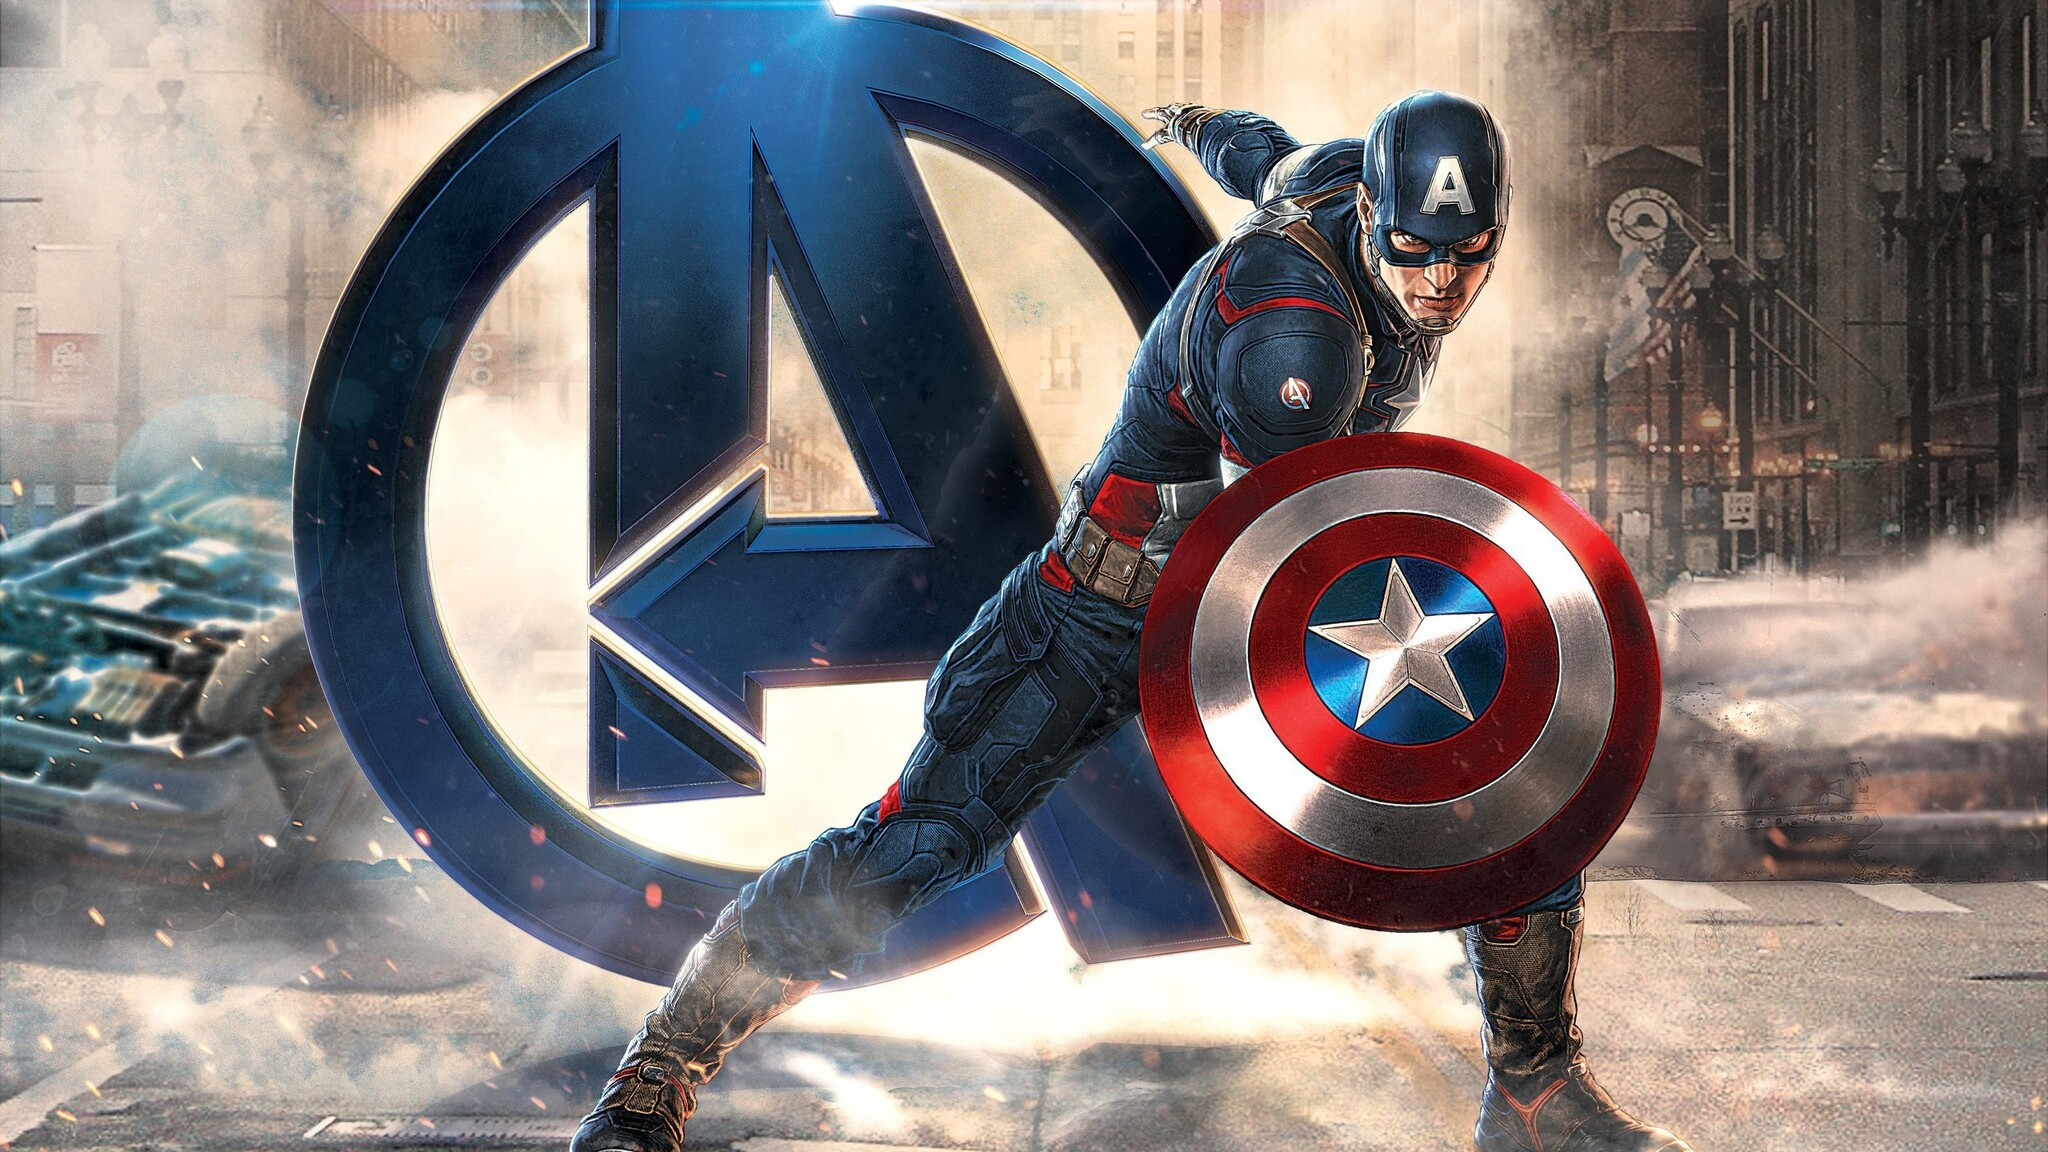 2048x1152 Captain America Avengers 2048x1152 Resolution HD ...